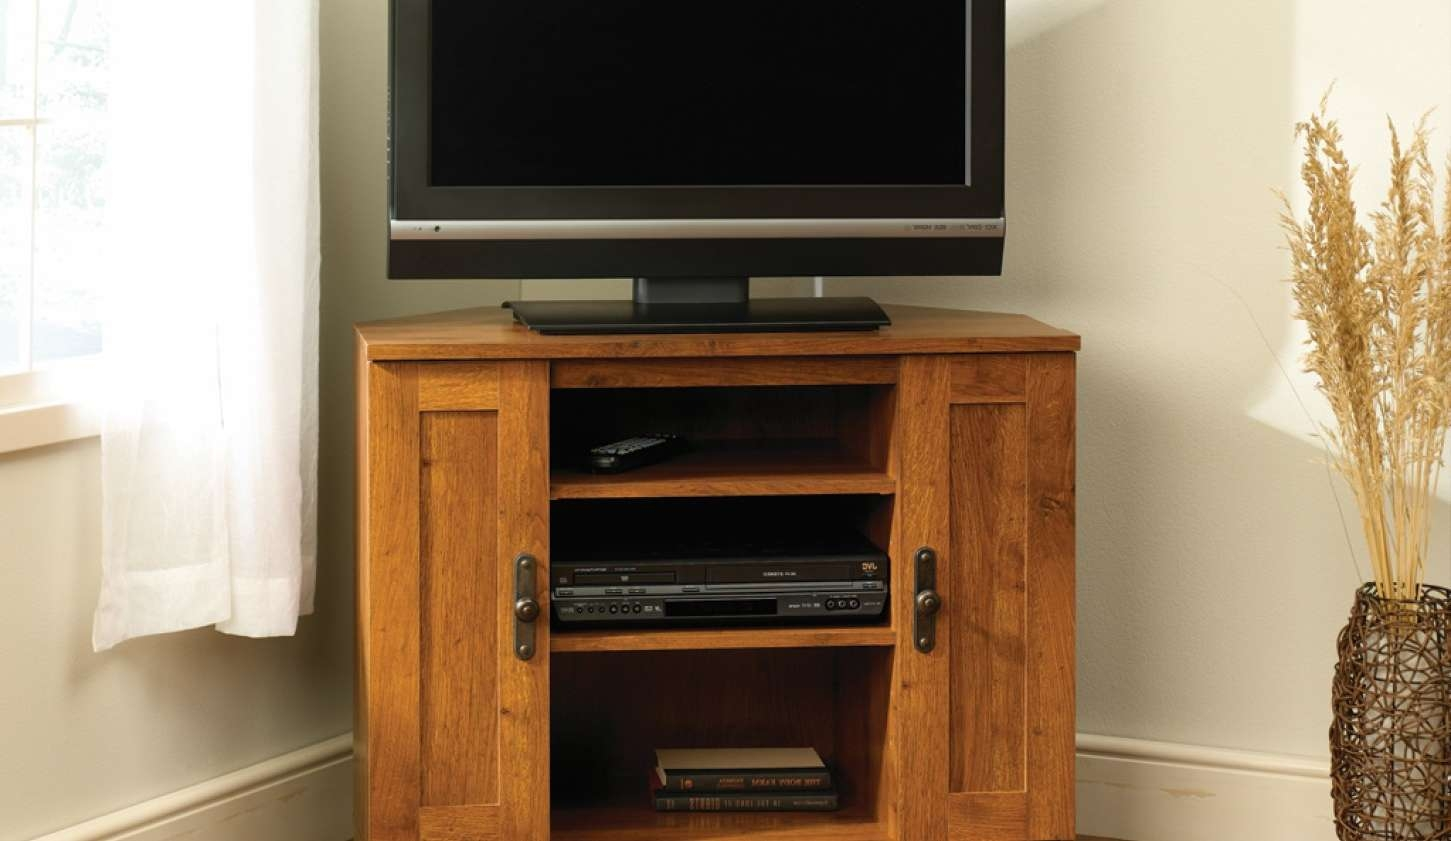 Tv : Breathtaking Corner Oak Tv Cabinets For Flat Screens With Throughout Oak Tv Cabinets For Flat Screens With Doors (View 13 of 20)